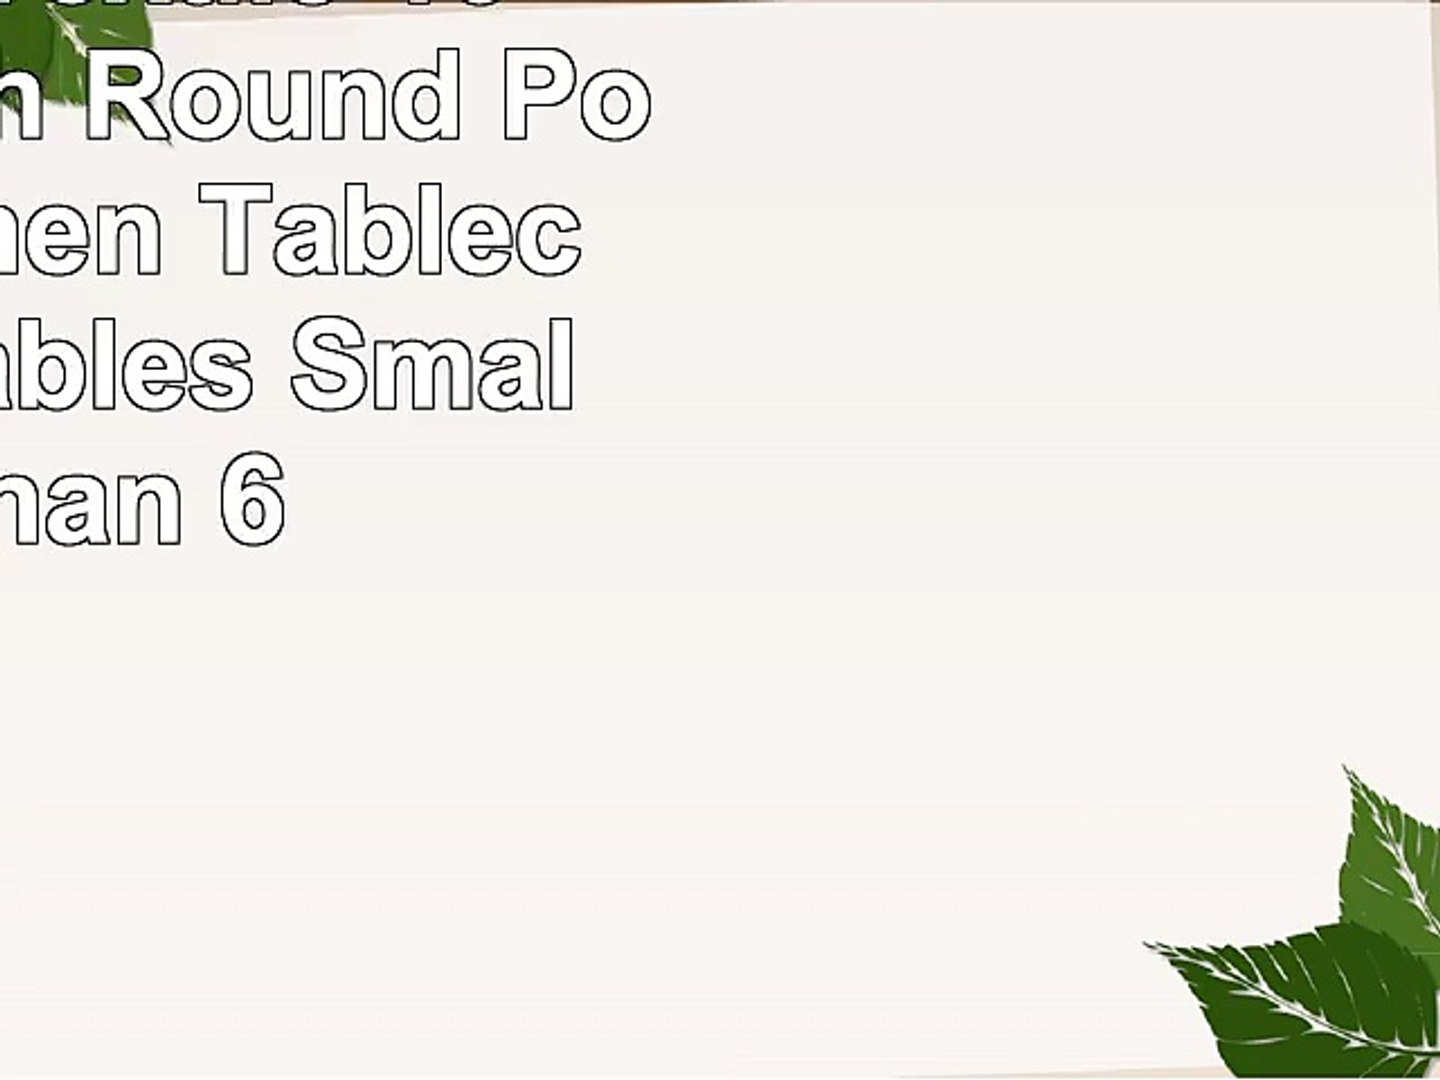 Ultimate Textile 10 Pack 60Inch Round Polyester Linen Tablecloth  for Tables Smaller